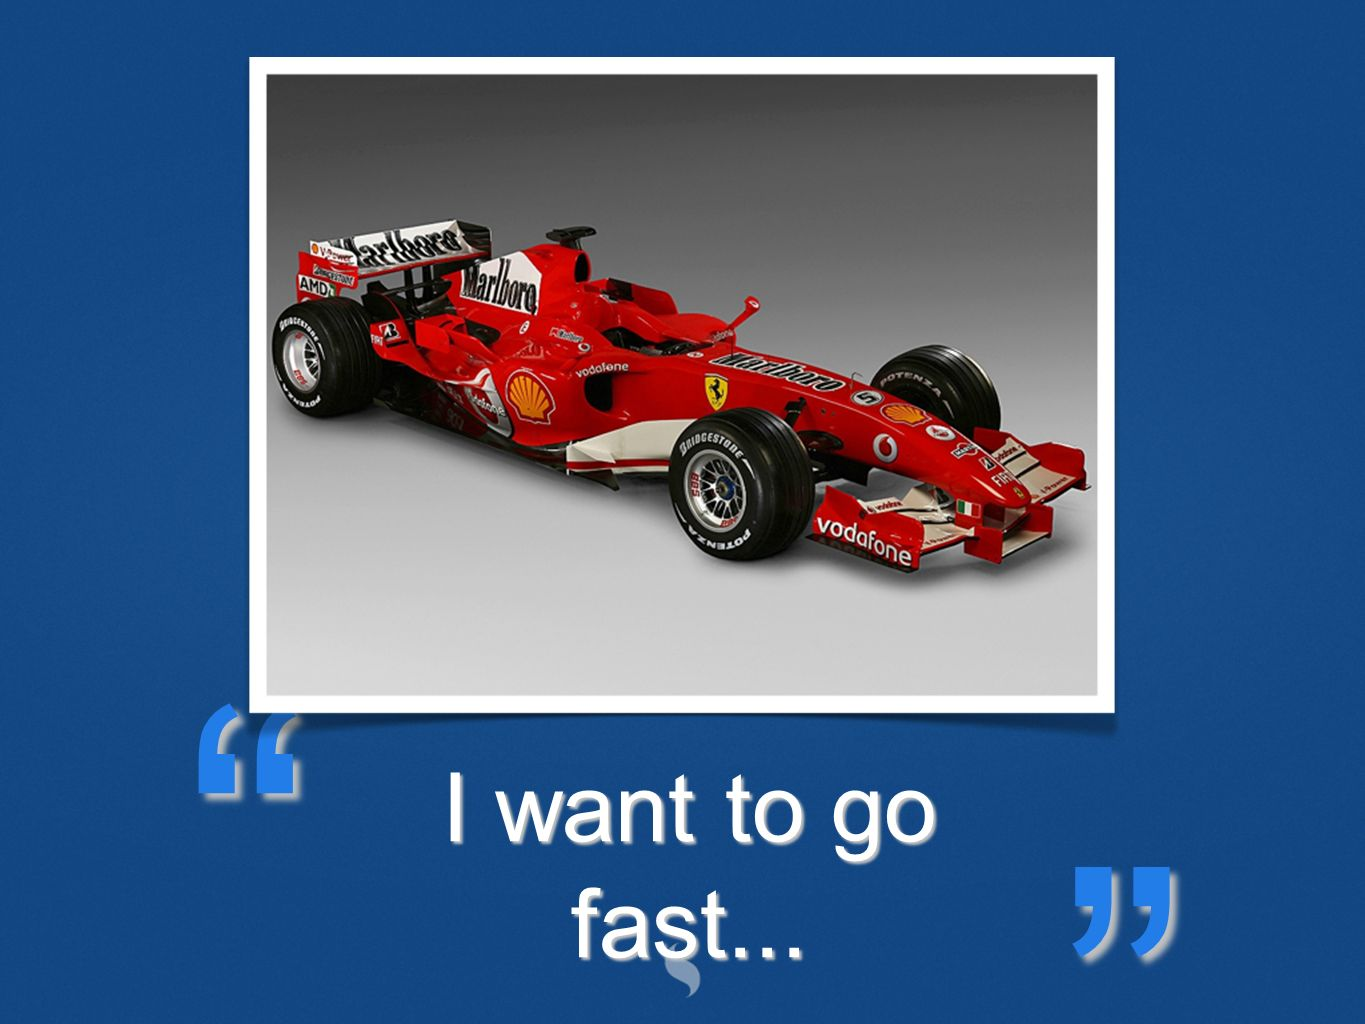 I want to go fast...